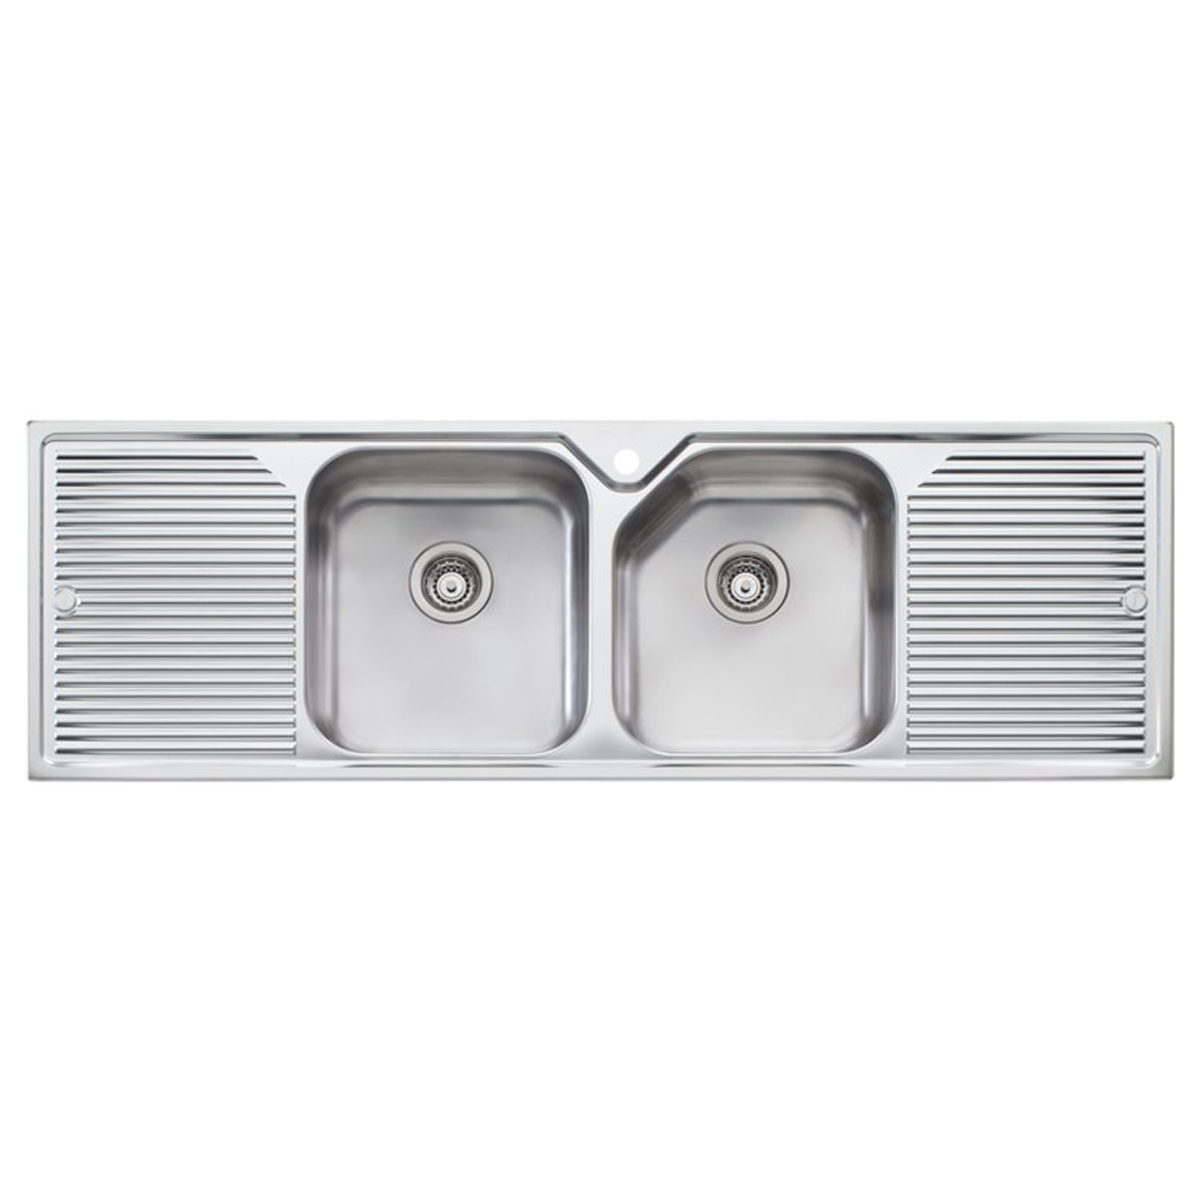 double drainer kitchen sink oliveri np653 nu bowl with drainer 6913